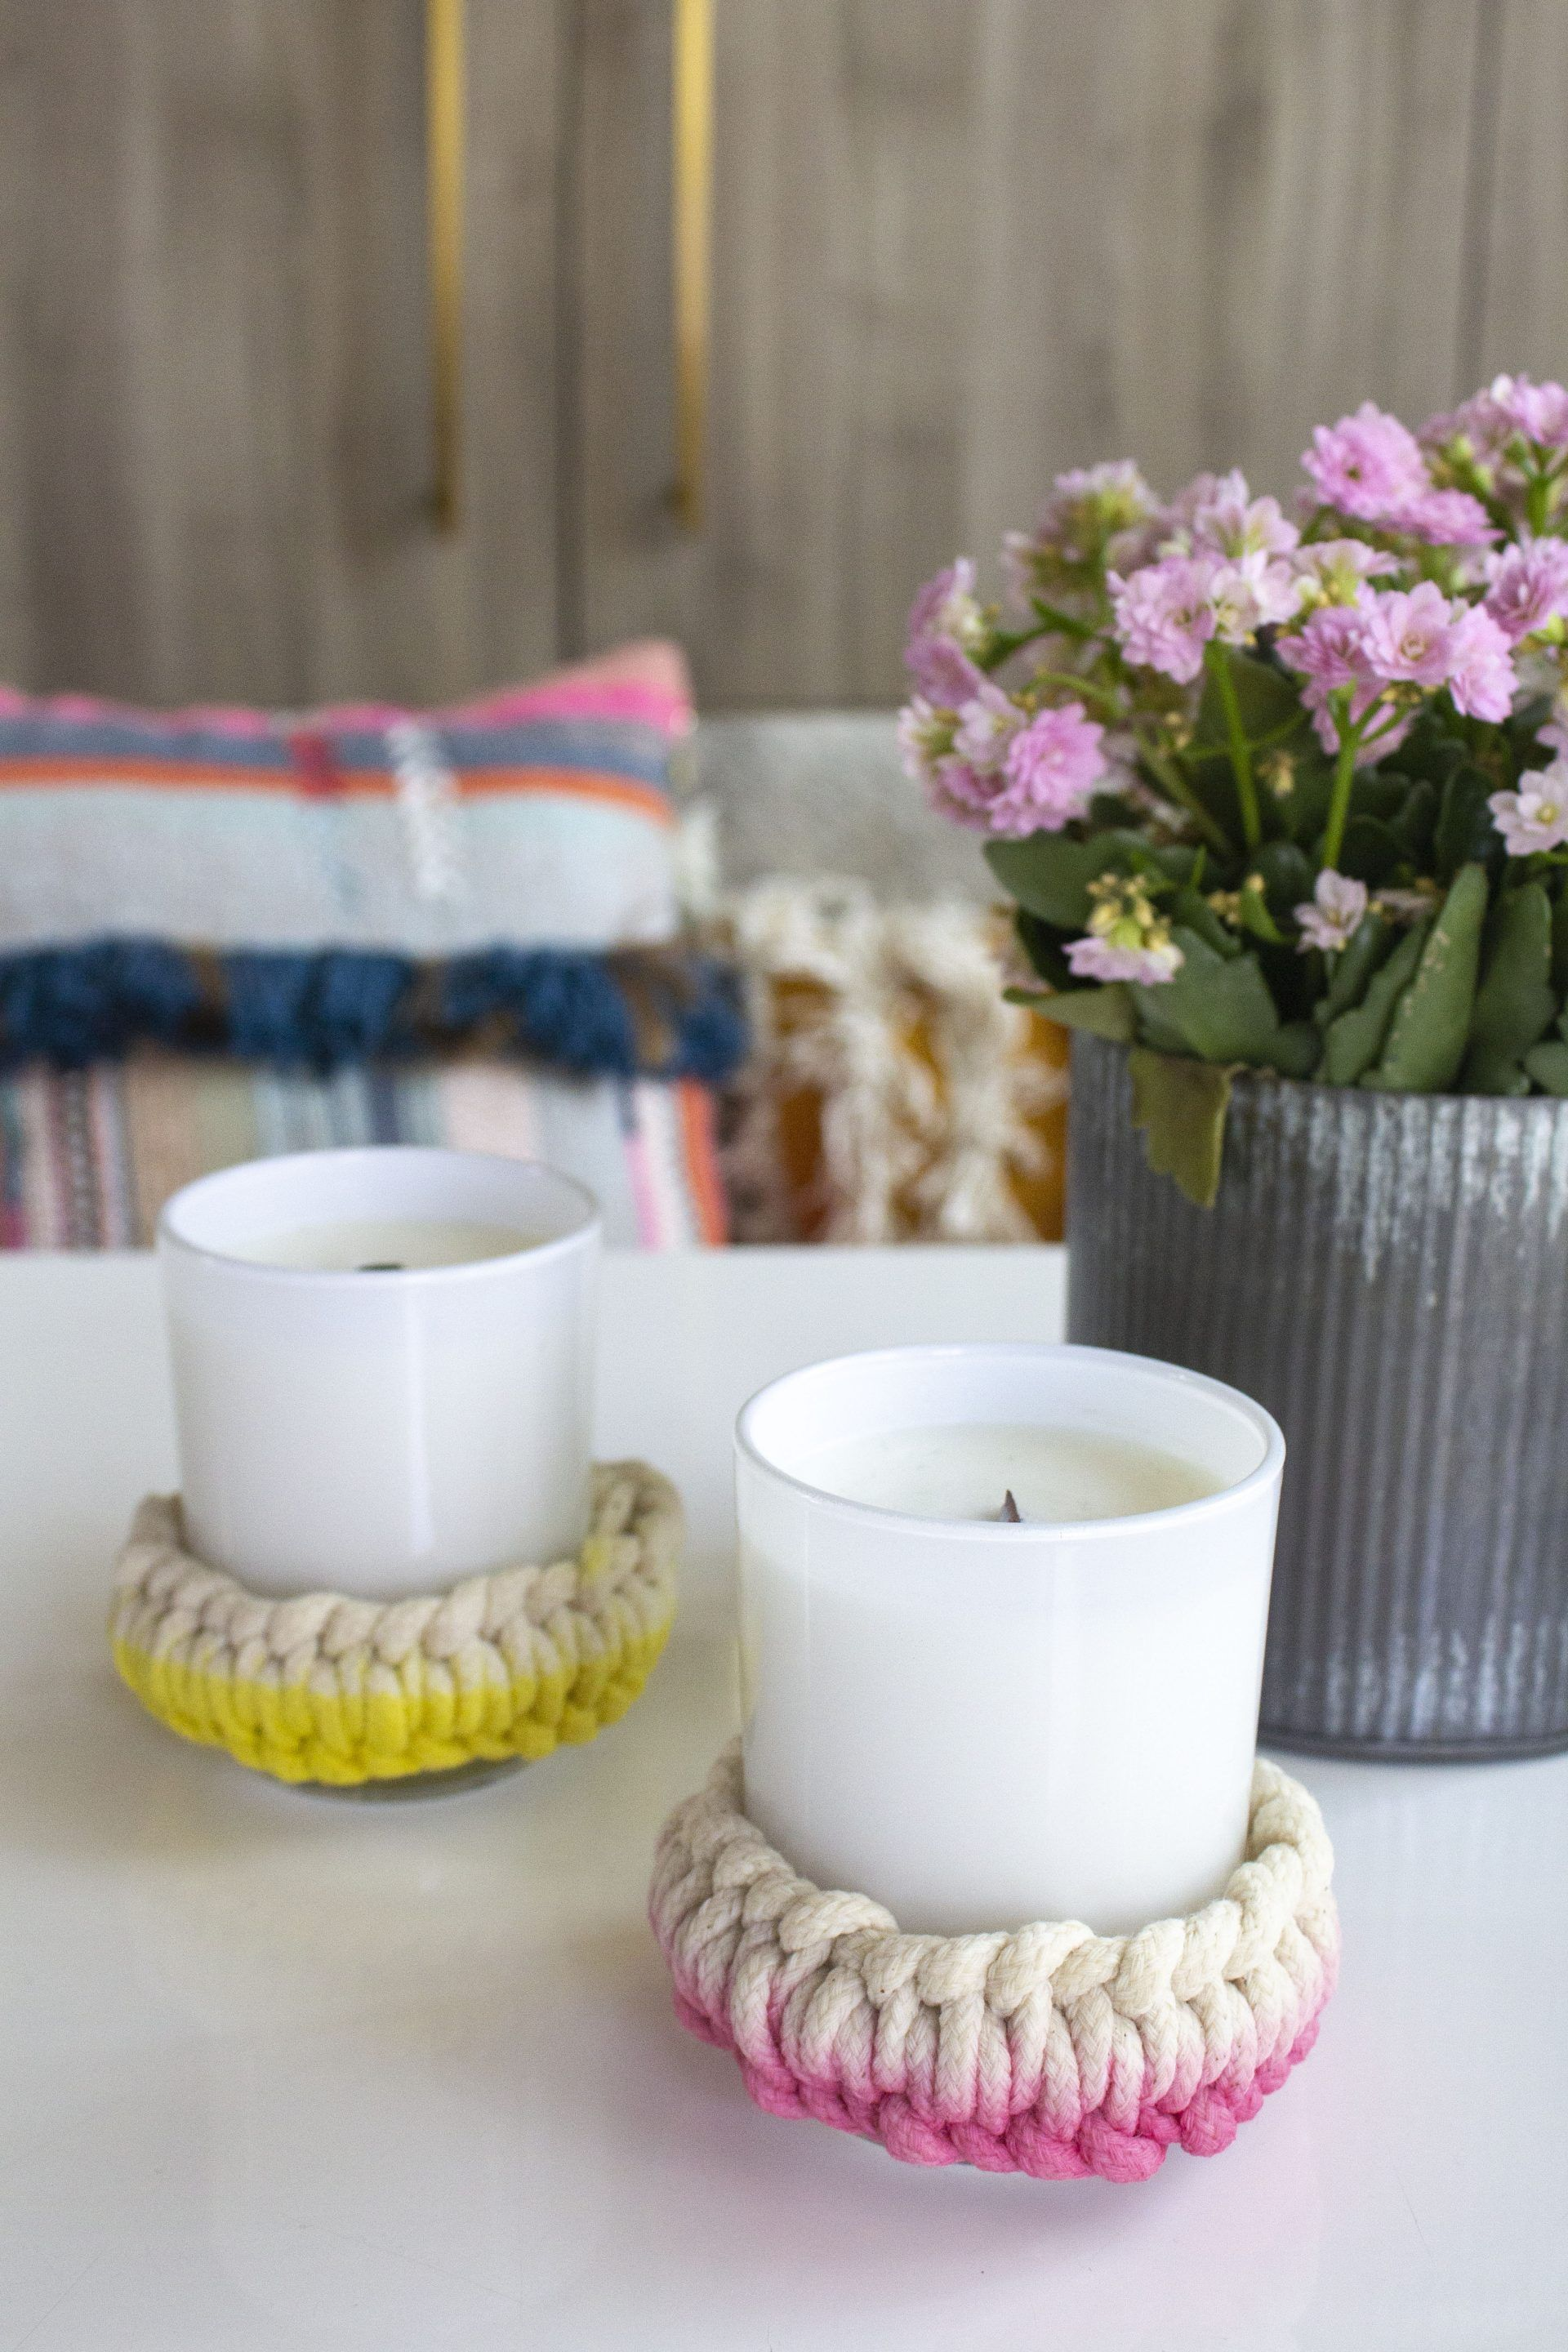 SIMPLE DIY CANDLE COZY Cozy candles, Wooden wick candles